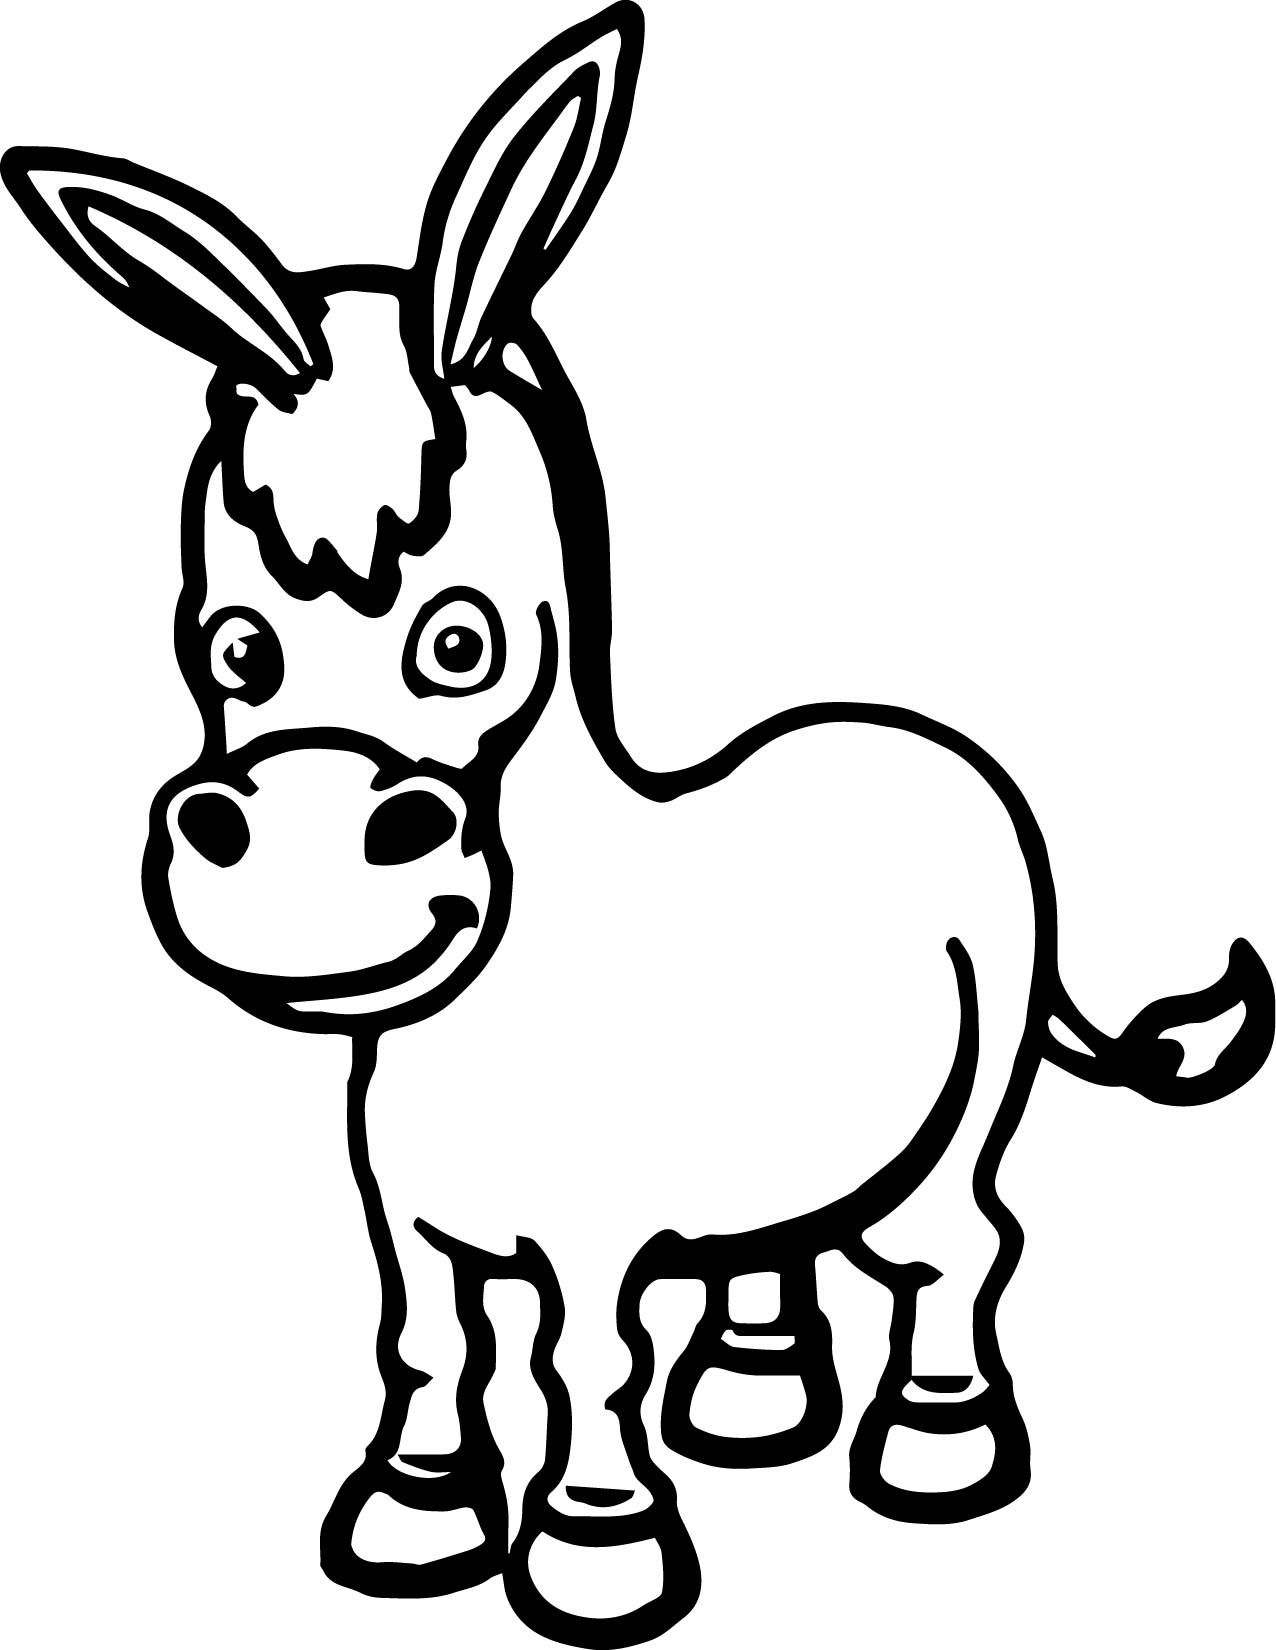 Cartoon Donkey Coloring Pages Cute Donkey Coloring Pages Baby Coloring Pages